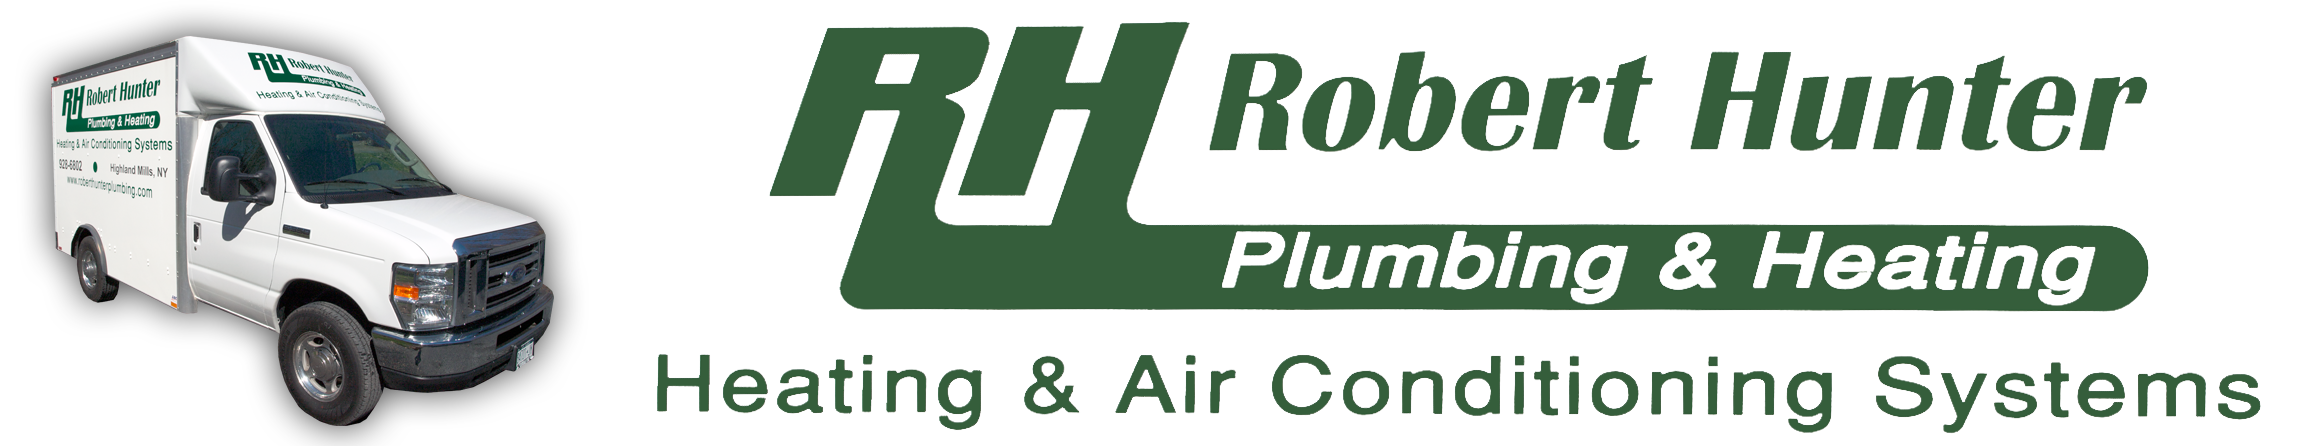 Robert Hunter Plumbing & Heating